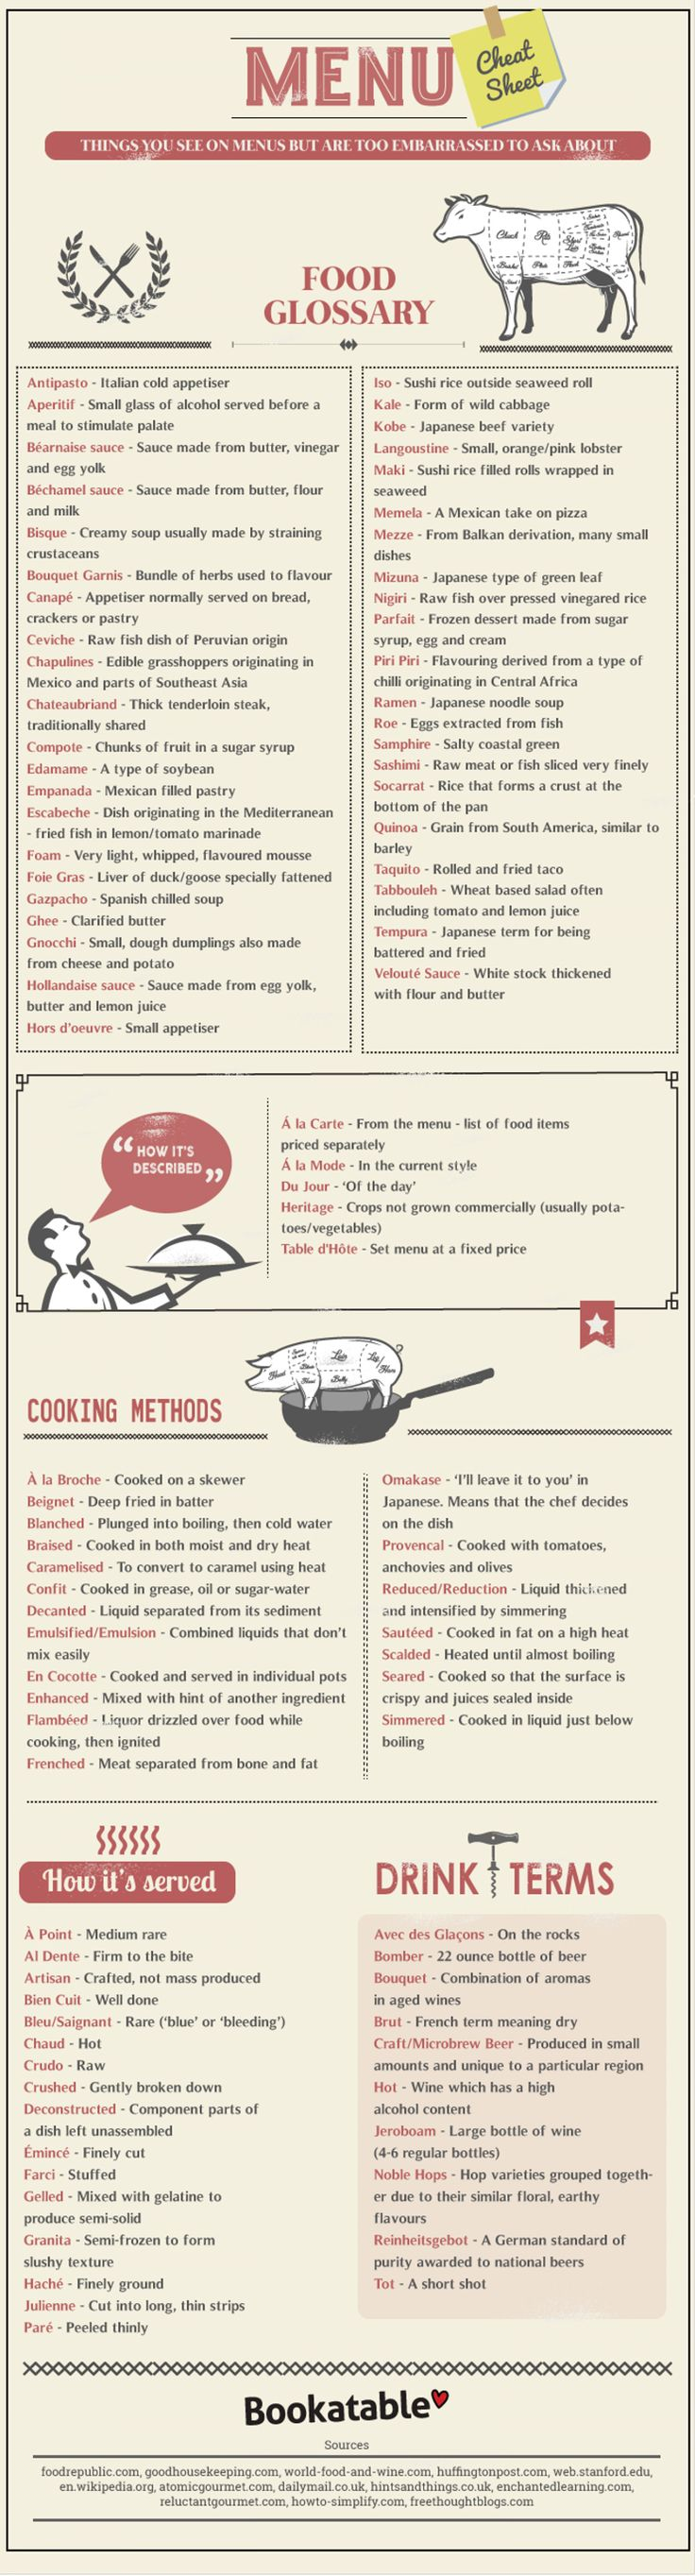 Worksheets Basic Cooking Terms Worksheet 7 best ideas images on pinterest basic cooking tips and this food infographic lists over 90 confusing menu terms explains exactly what each one means